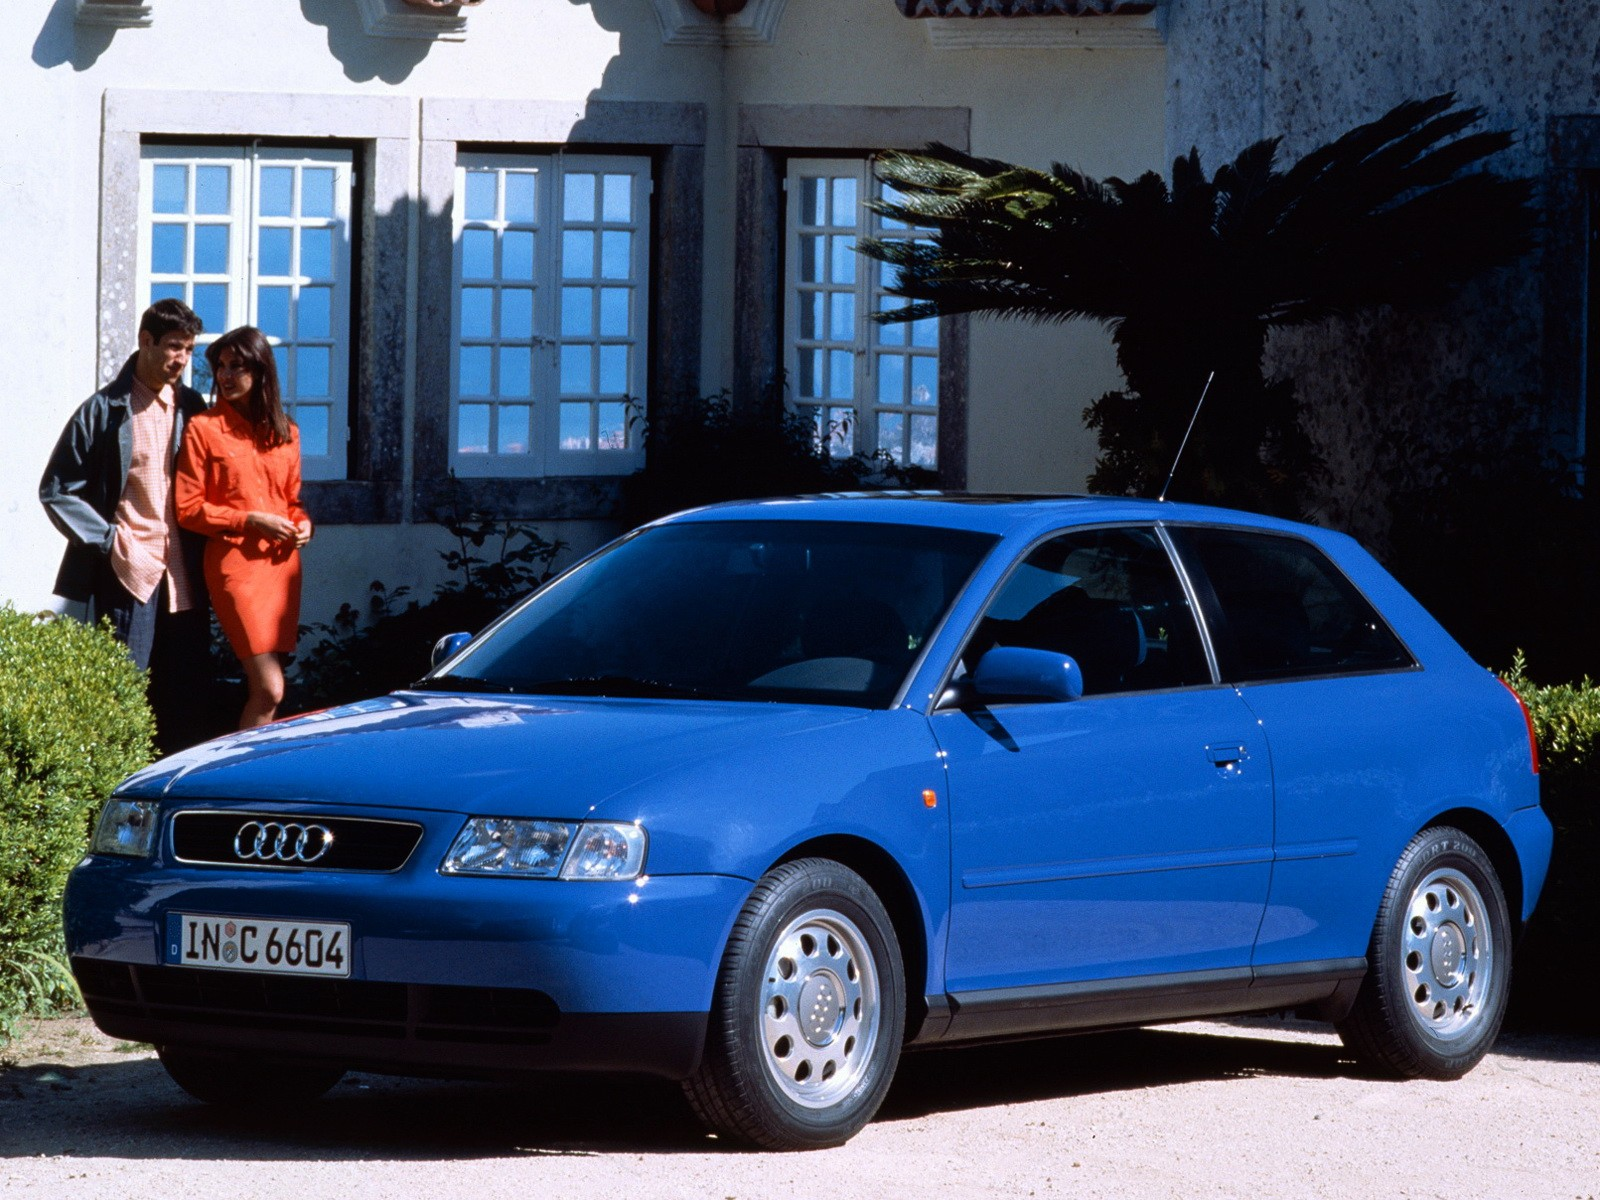 1St Choice Auto >> AUDI A3 specs & photos - 1996, 1997, 1998, 1999, 2000, 2001, 2002, 2003 - autoevolution